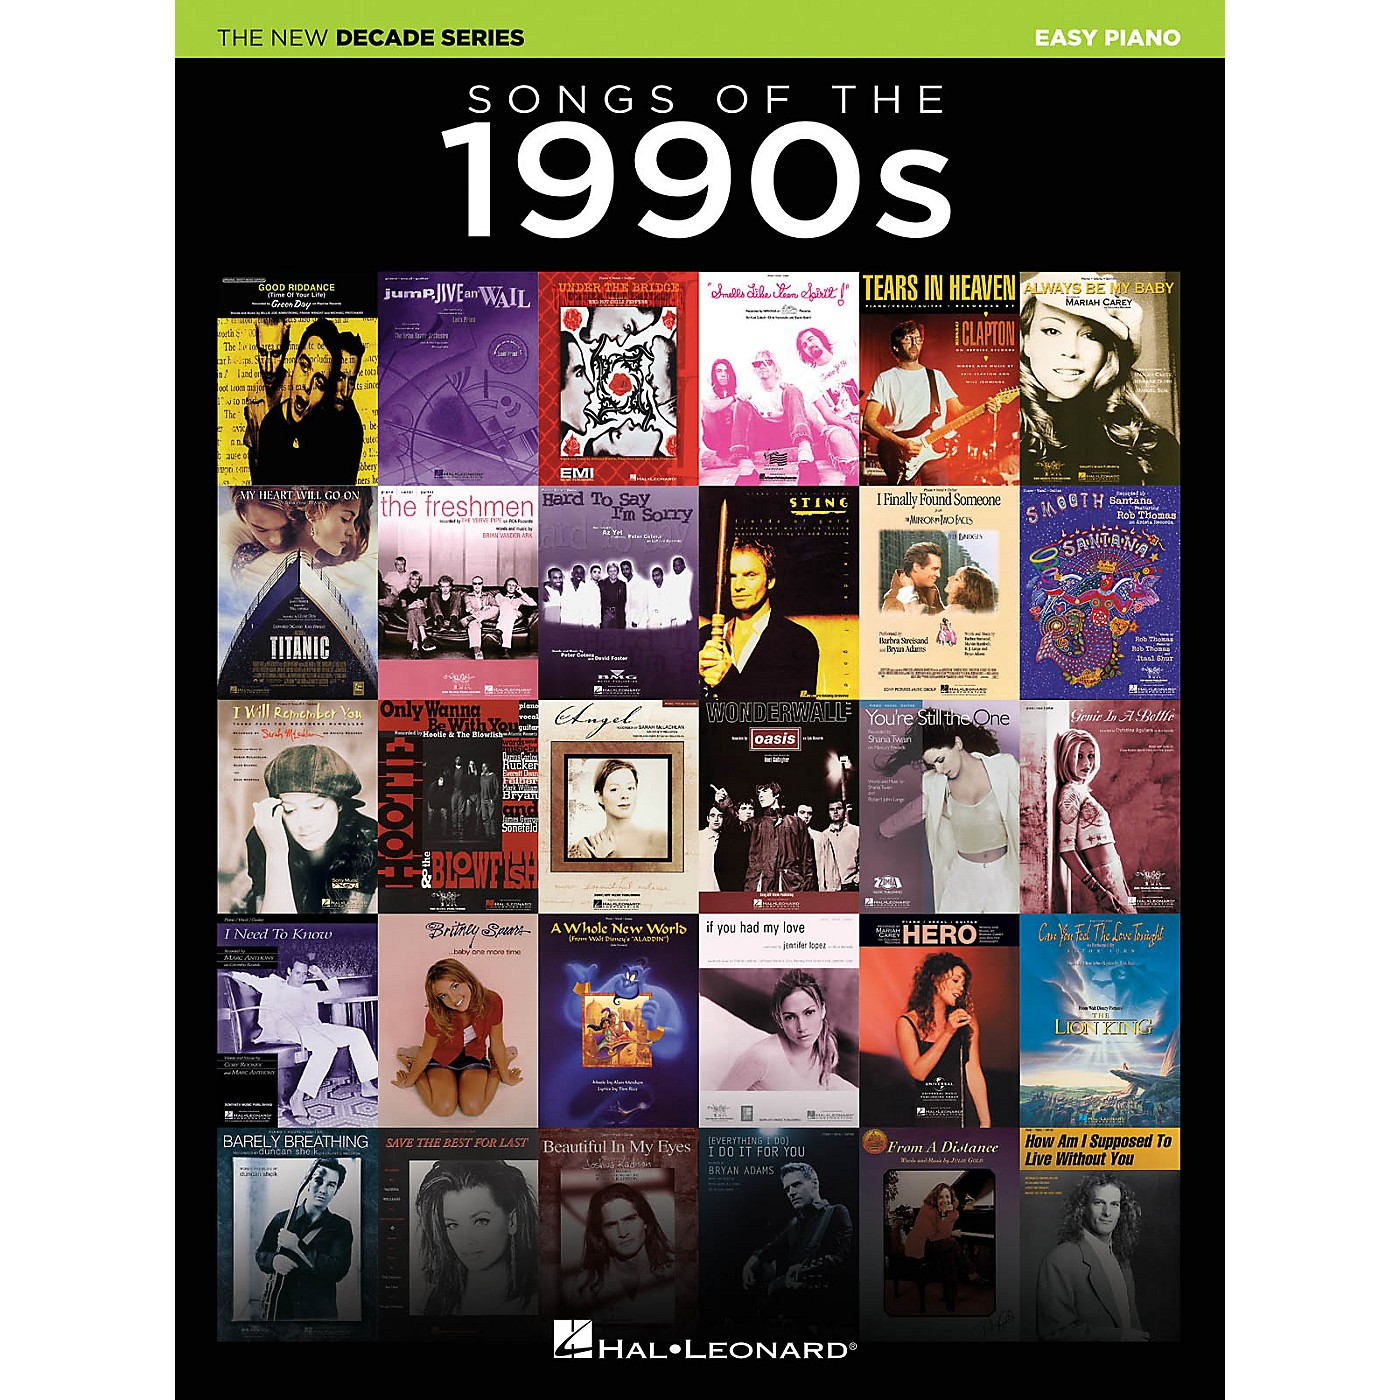 Hal Leonard Songs of the 1990s (The New Decade Series) Easy Piano Songbook thumbnail